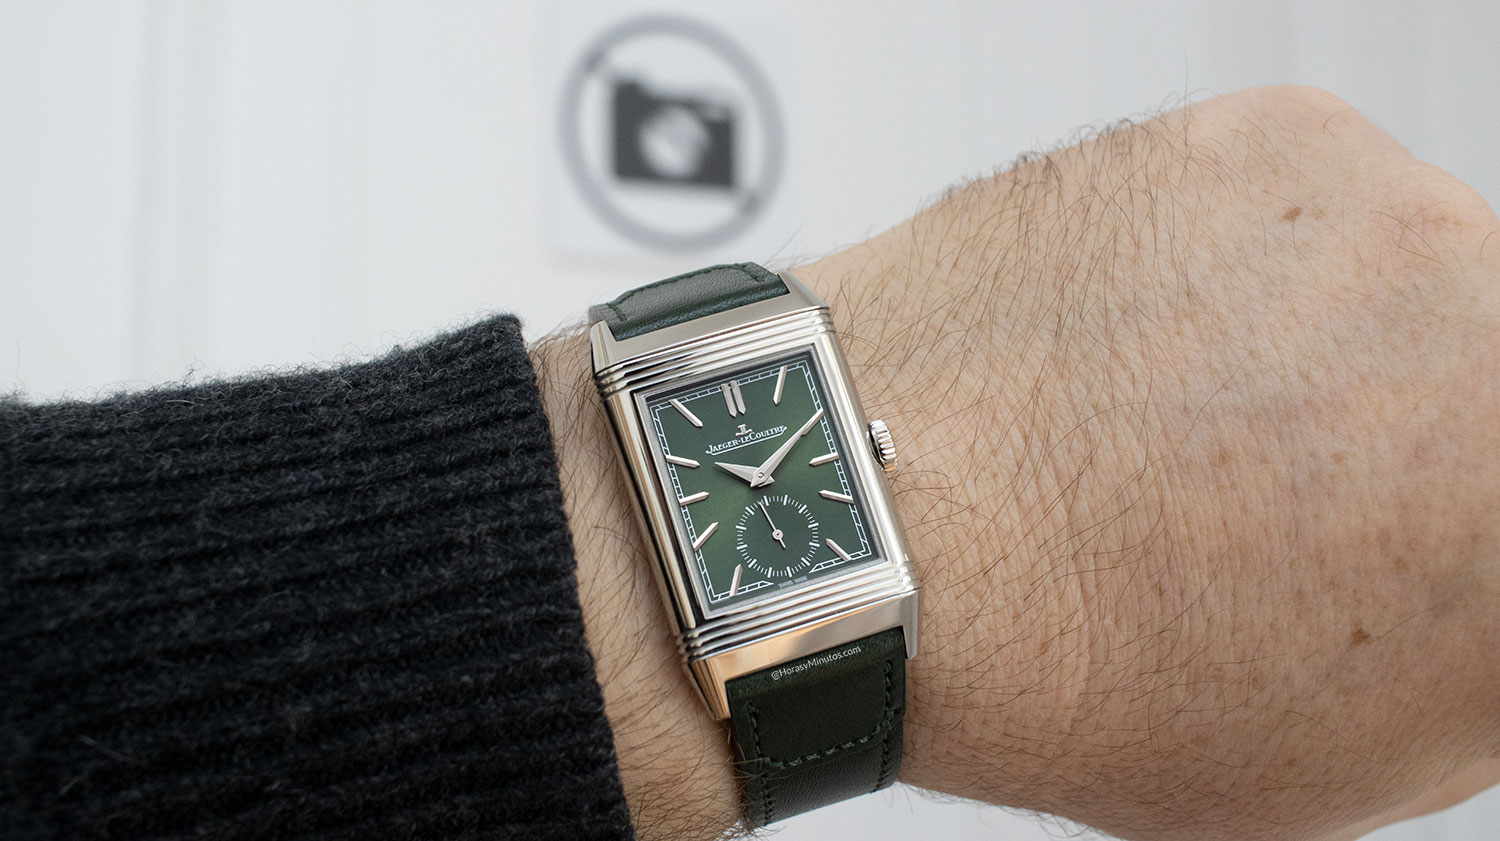 El Jaeger-LeCoultre Reverso Tribute Small Seconds, en la muñeca